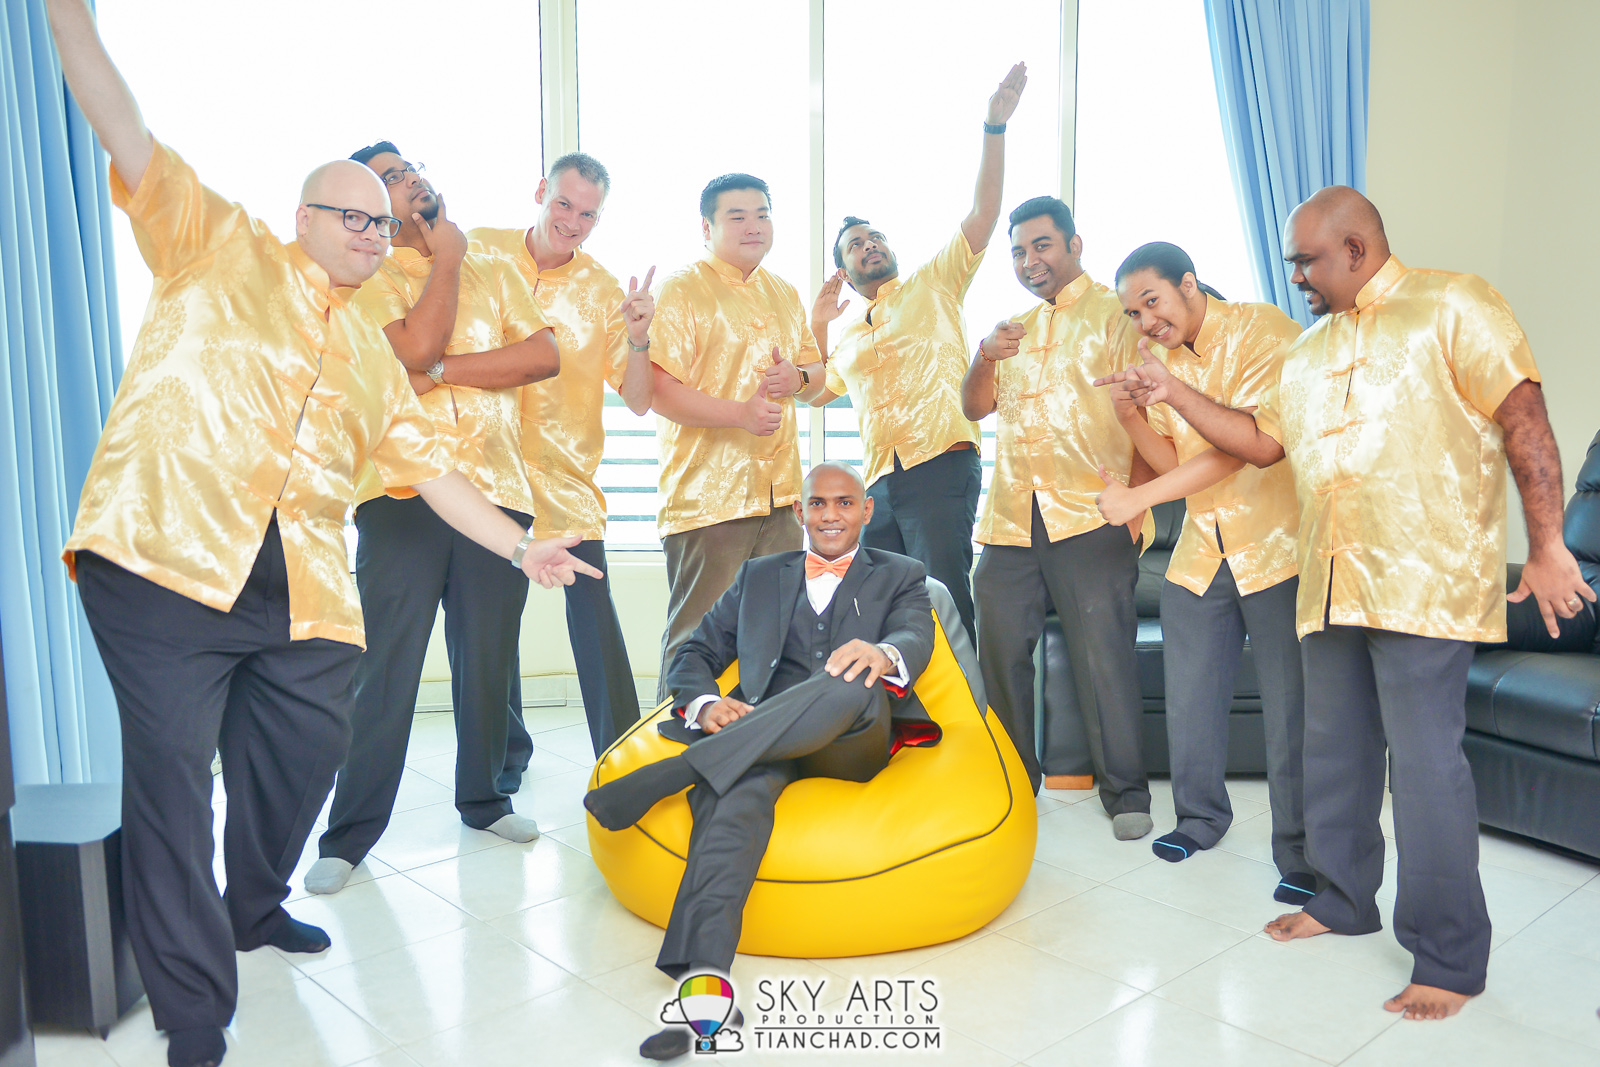 [W] Melvin & Sueann Wedding Actual Day (Penang)